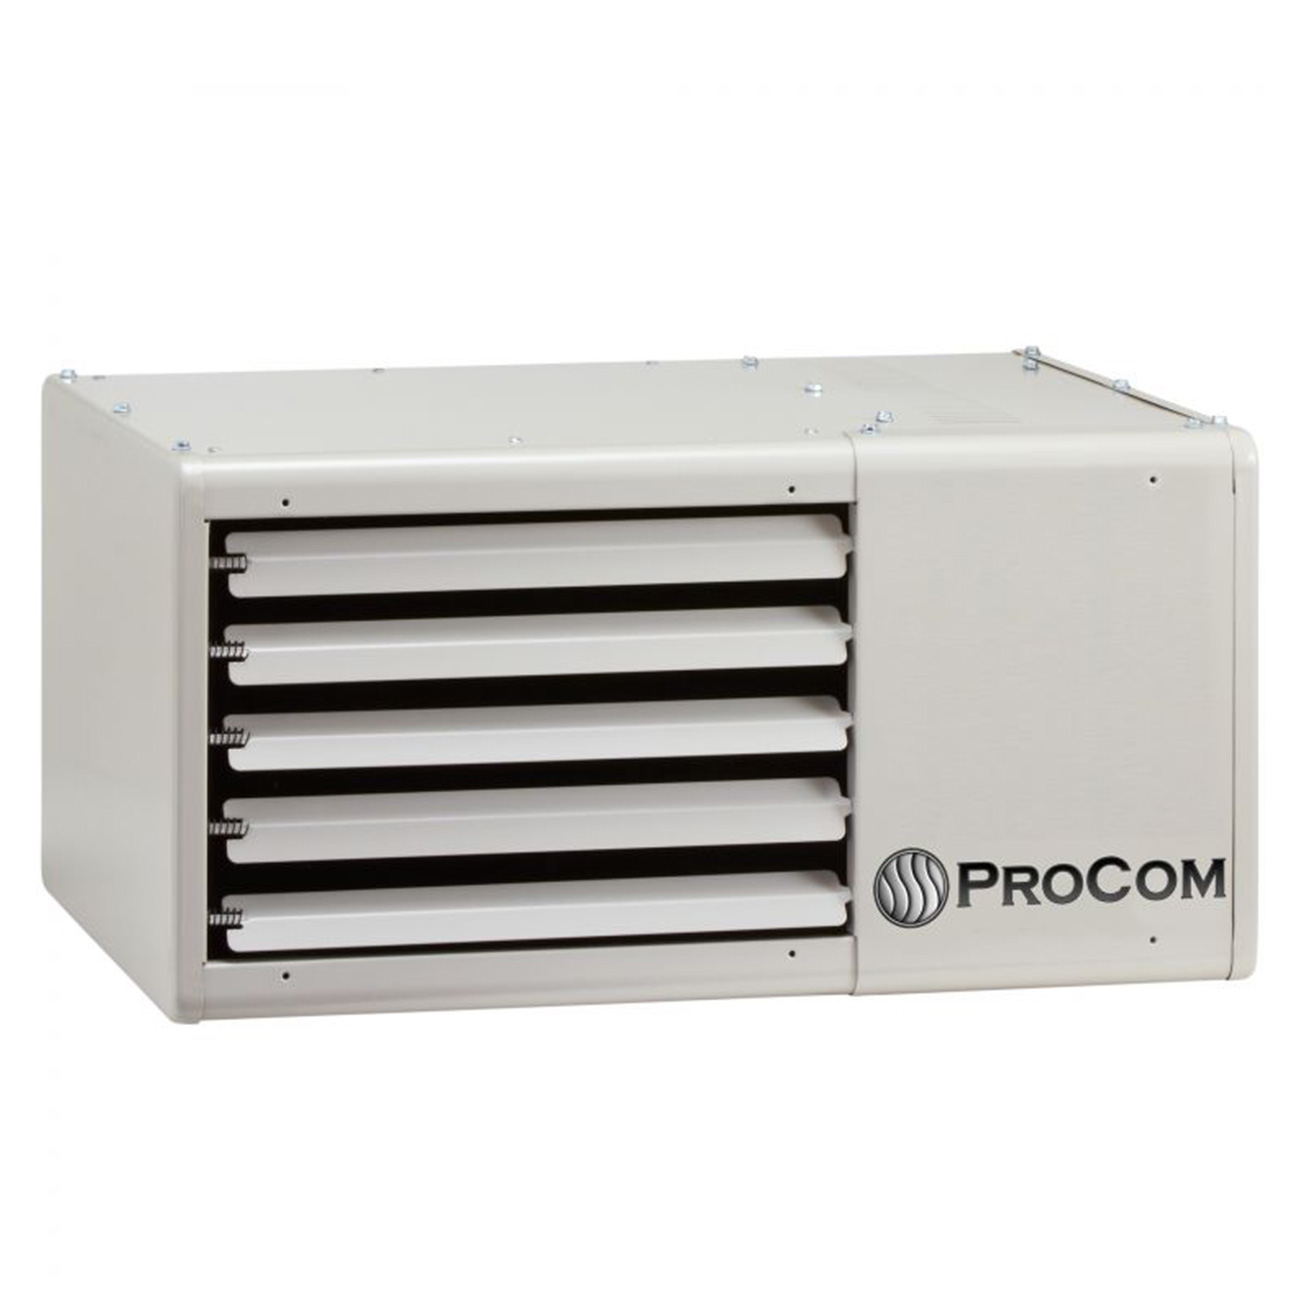 Procom Natural Gas Heater Parts